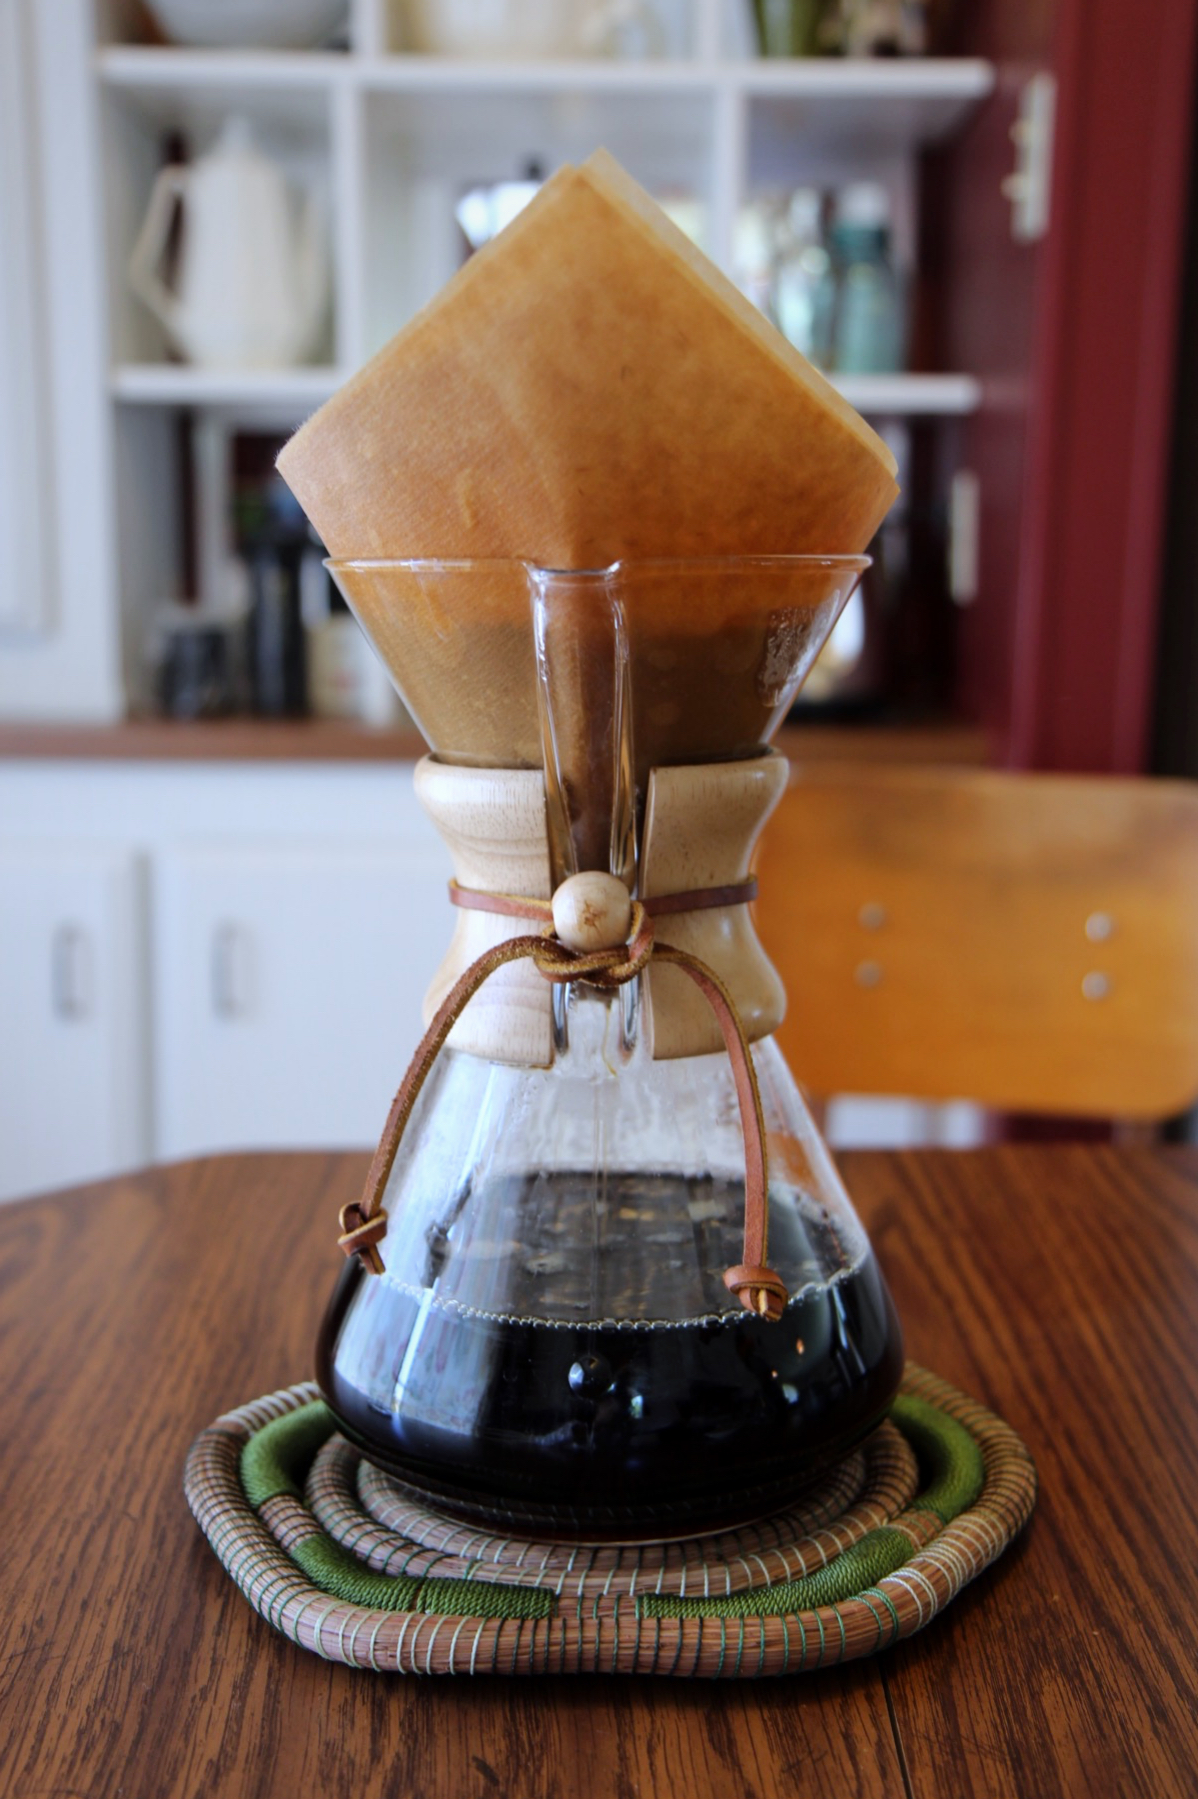 Our 50 oz.Chemex, in all its beauty